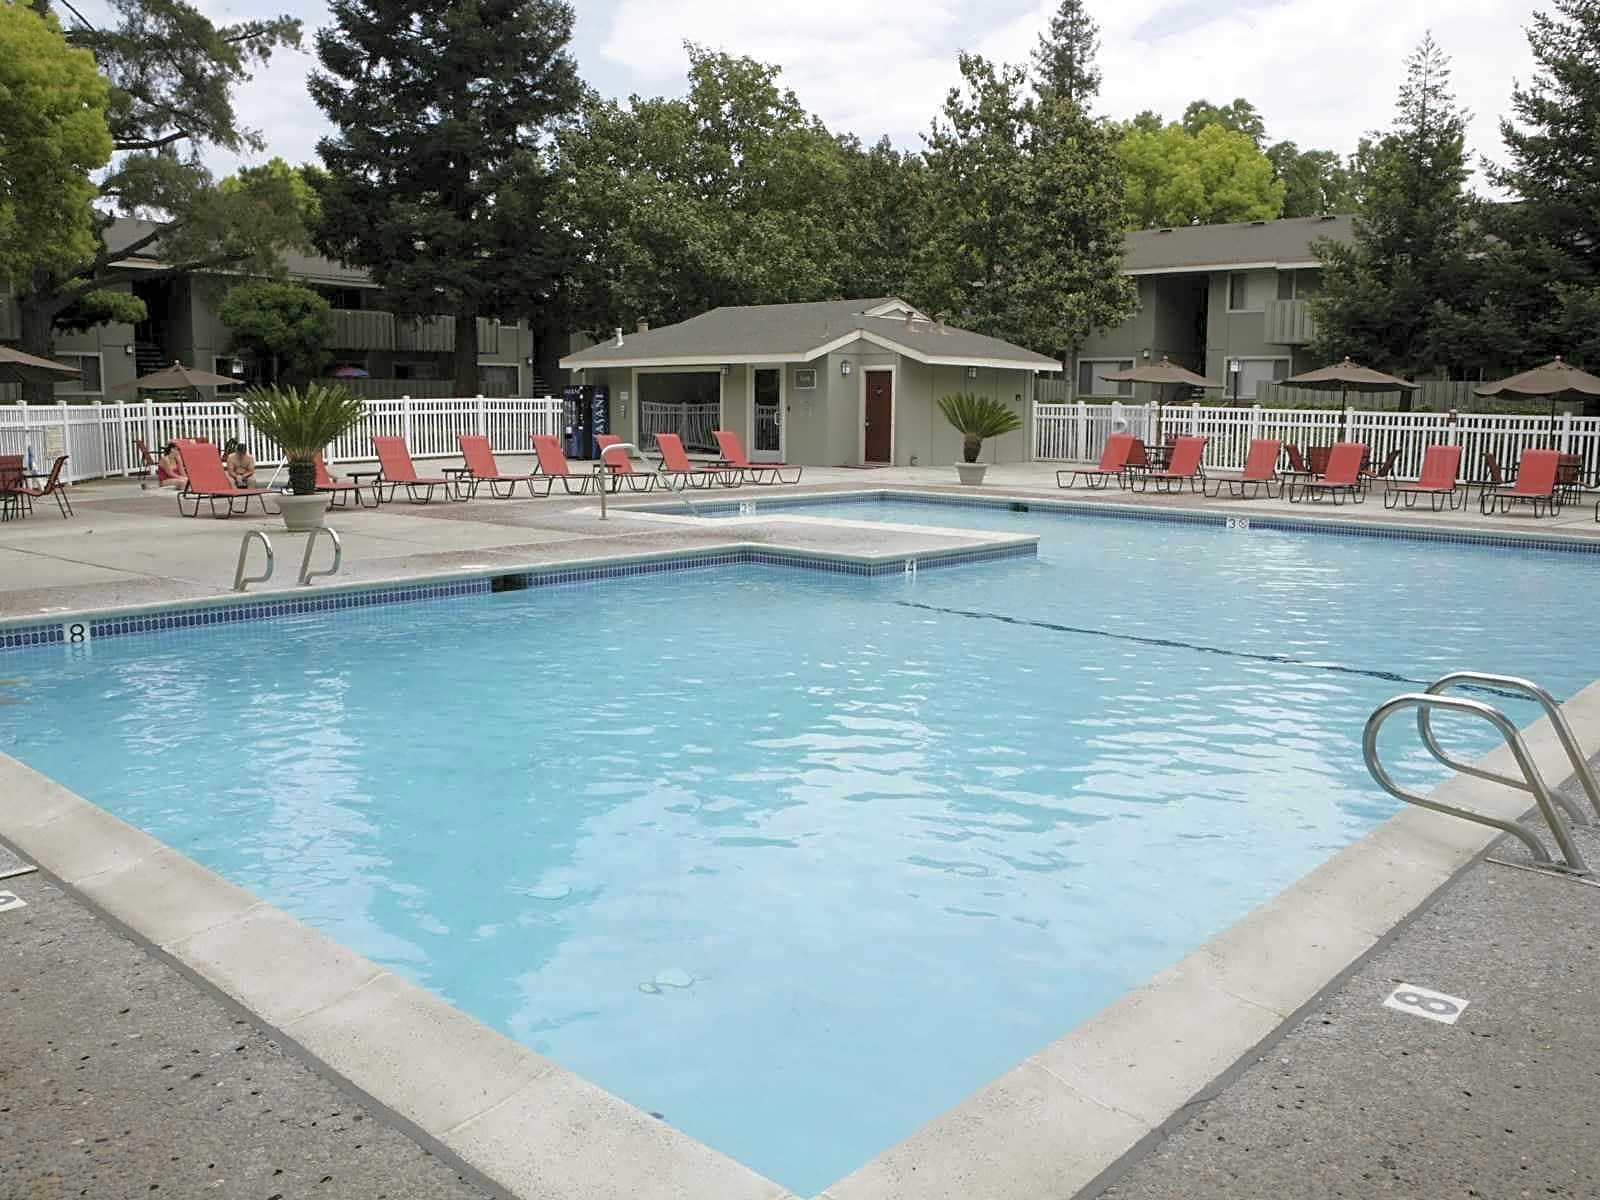 Cherrywood Apartments - San Jose, CA 95118